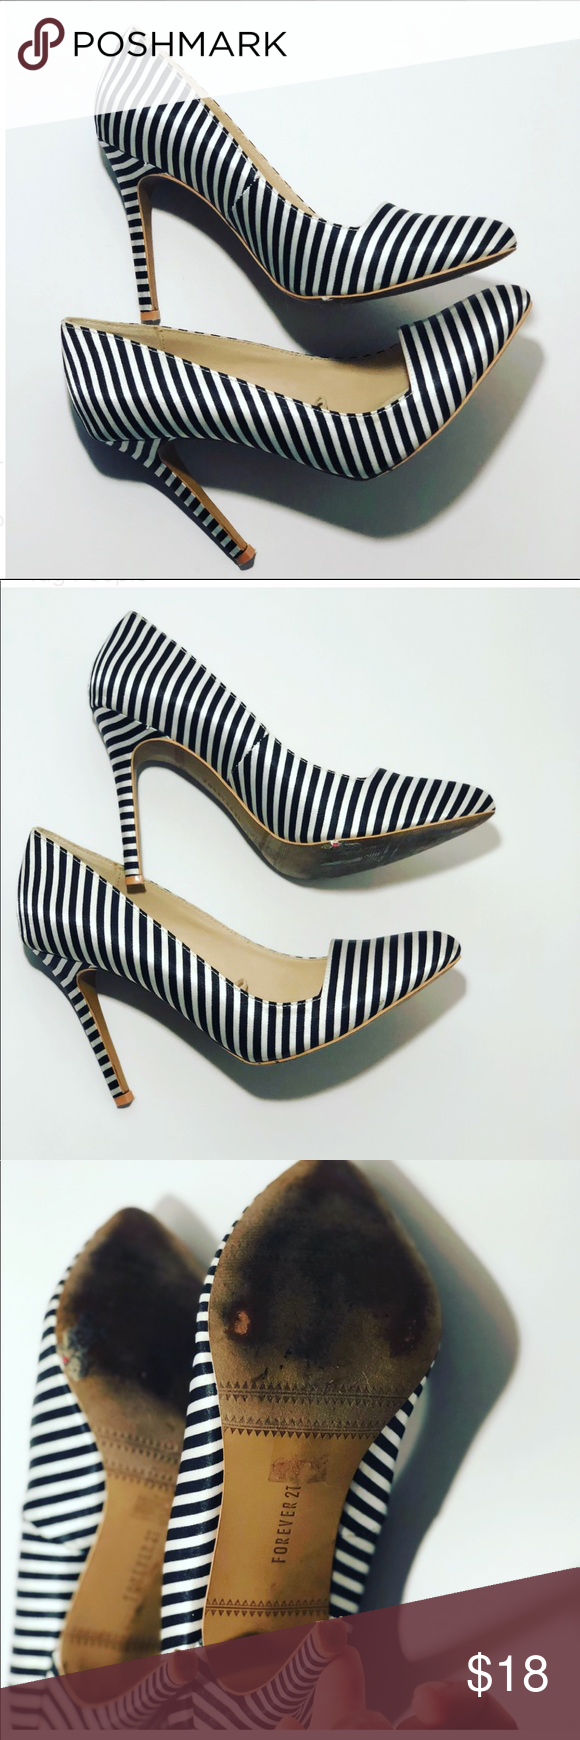 764b510b8f7 Forever 21 black white stripe pumps size 8  Women s forever 21 heels Super  cute Black